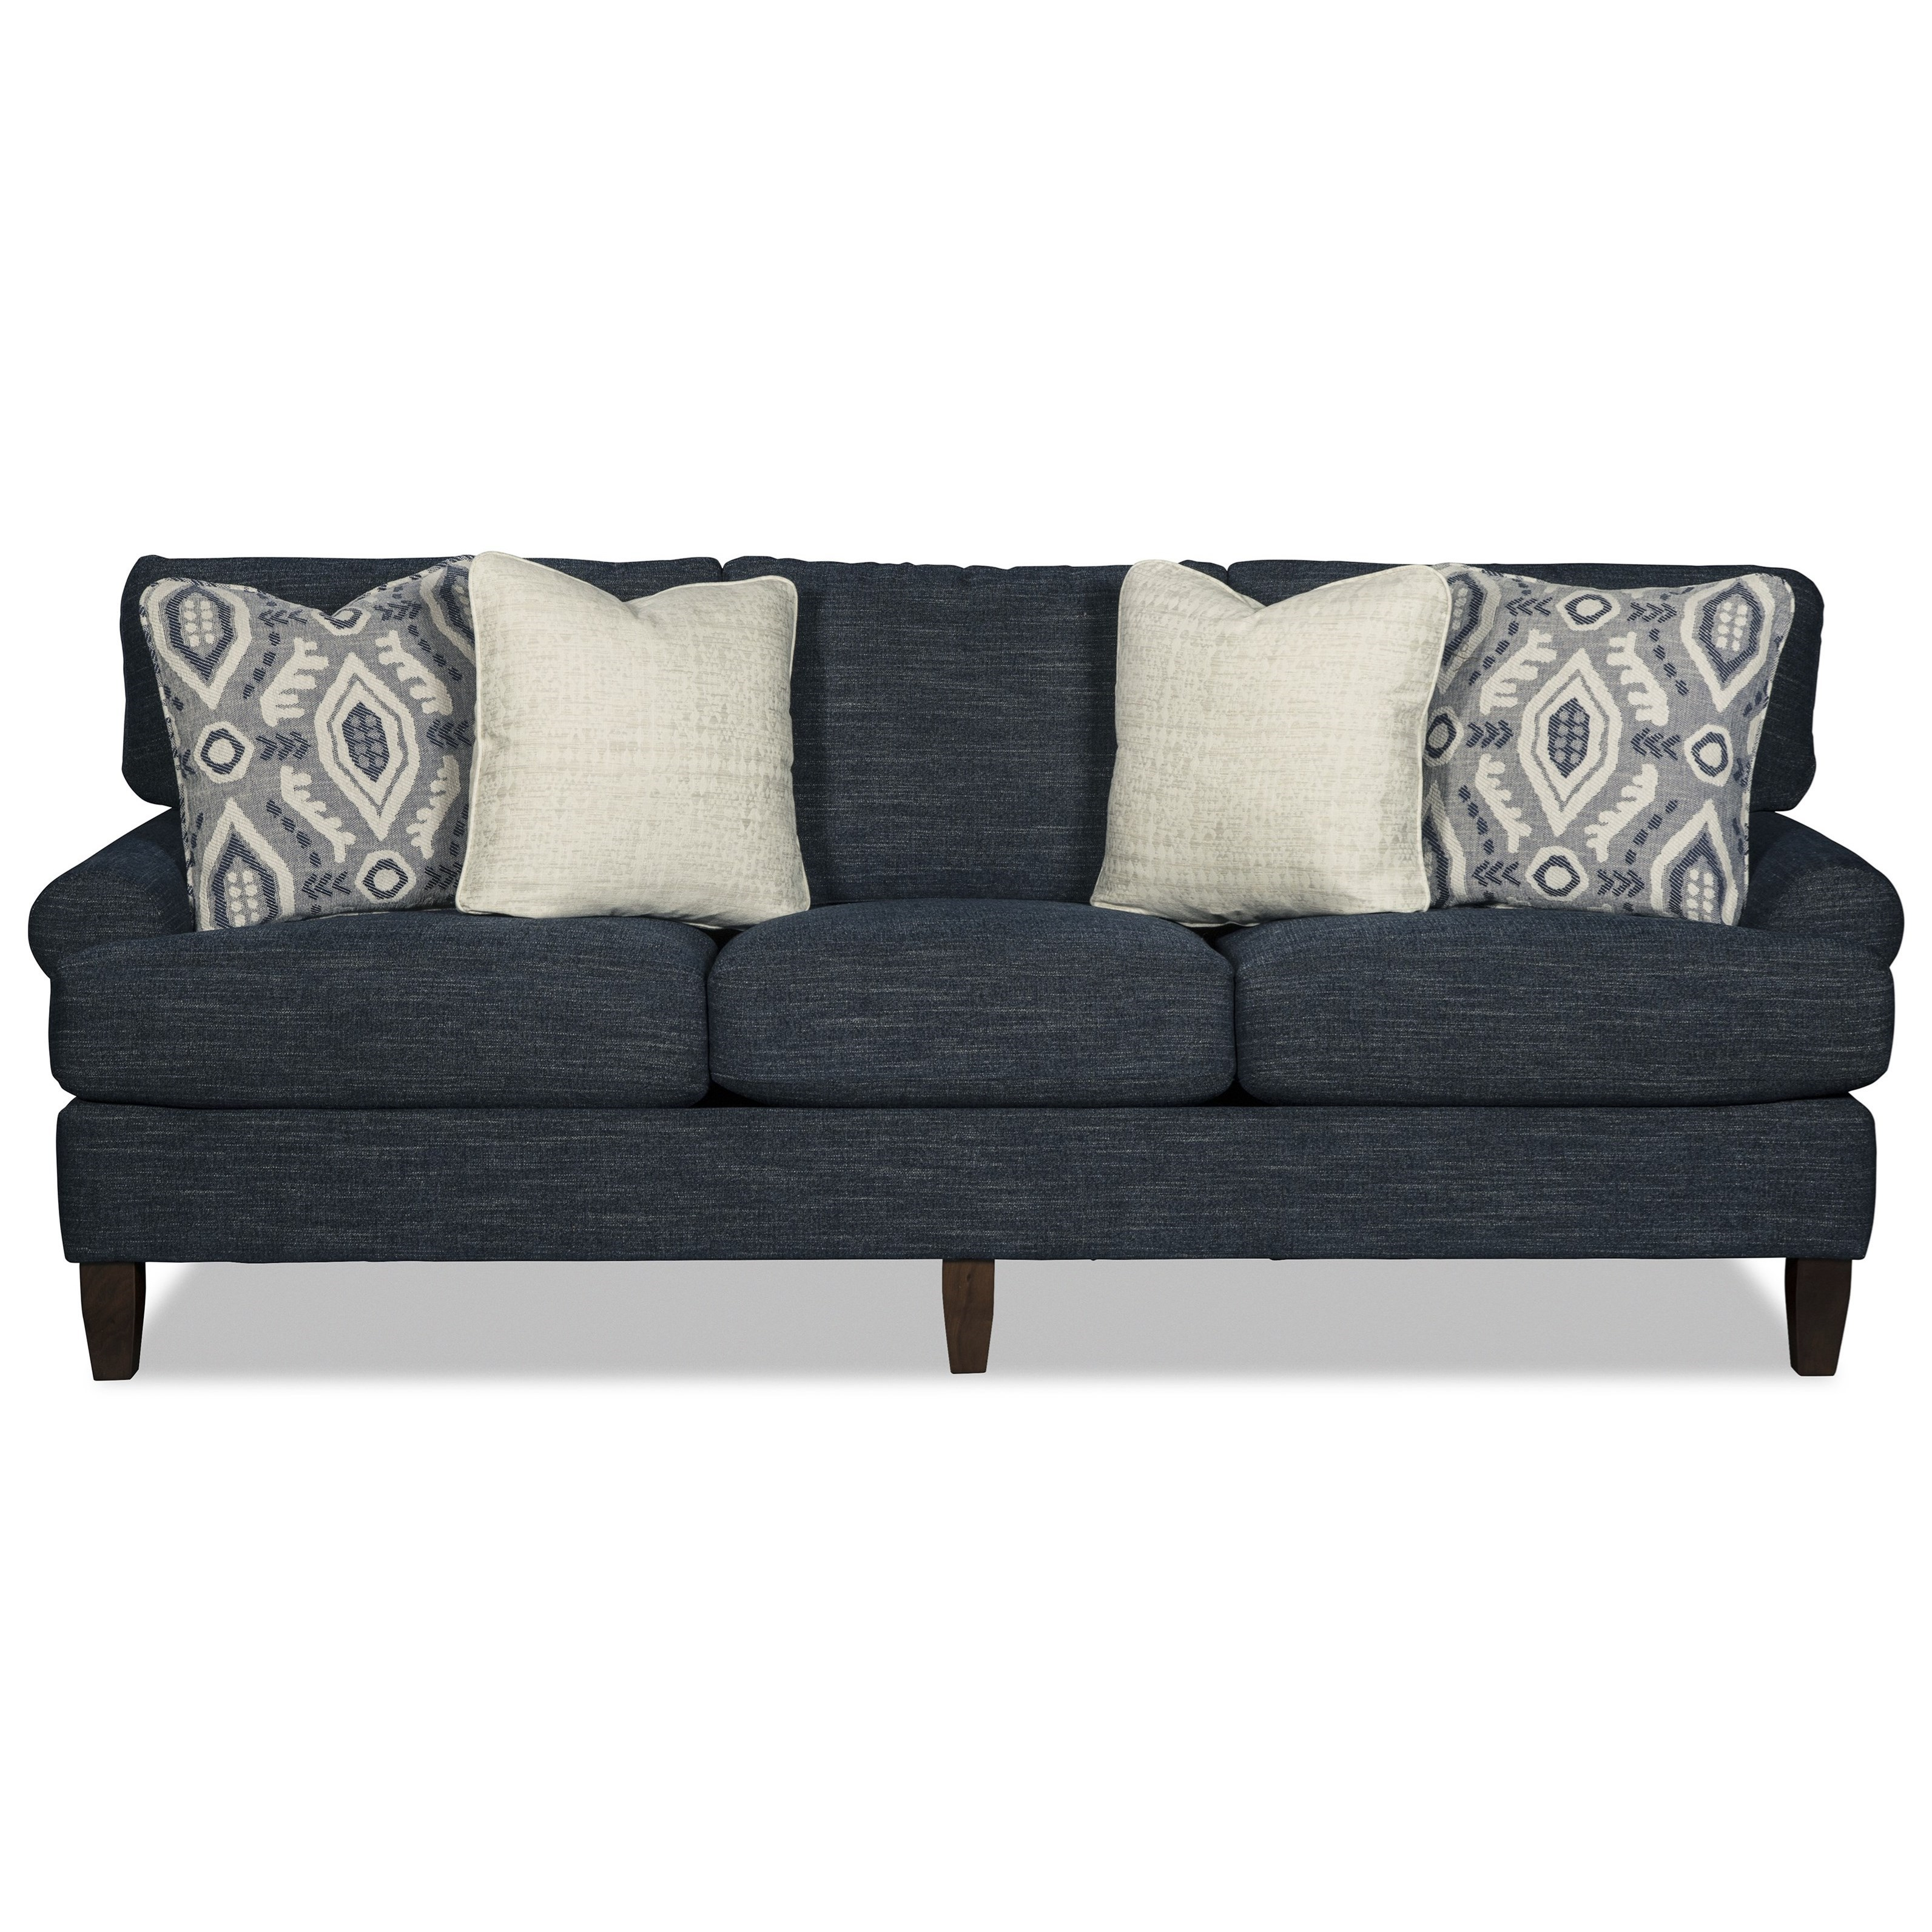 701350 Sofa by Craftmaster at Baer's Furniture